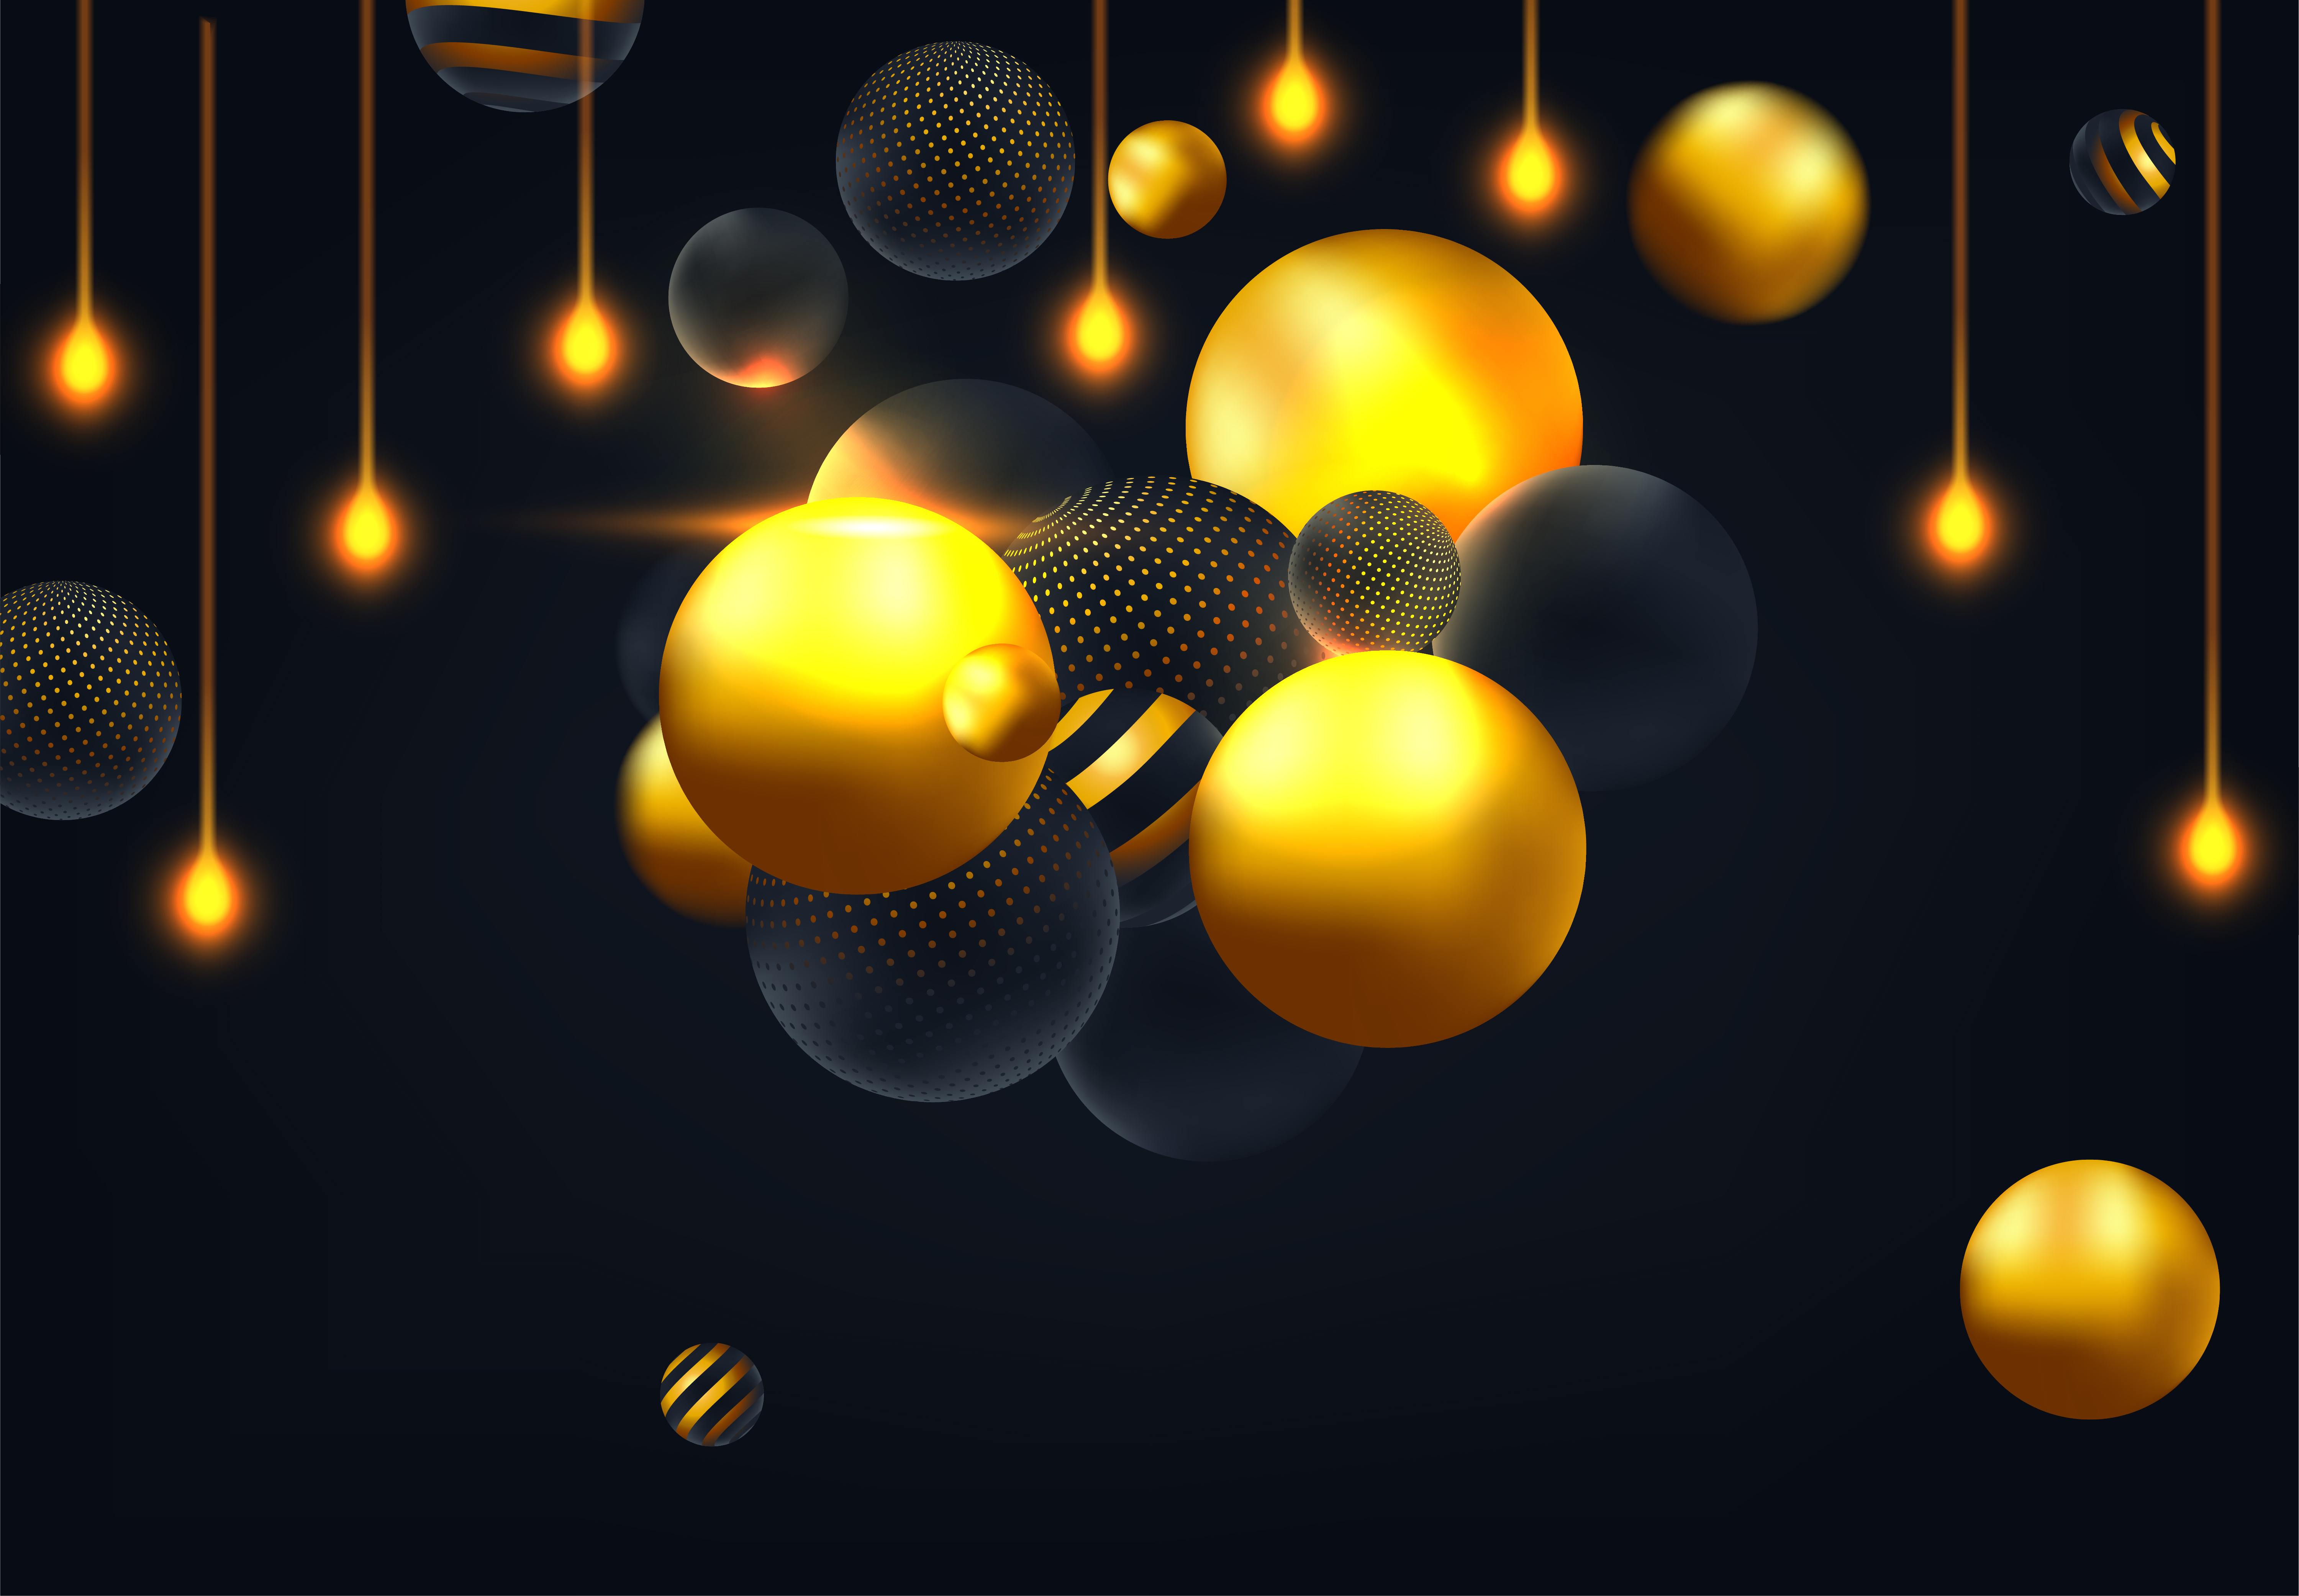 Download Free Abstract Background With 3d Spheres Graphic By Inkwellapp for Cricut Explore, Silhouette and other cutting machines.